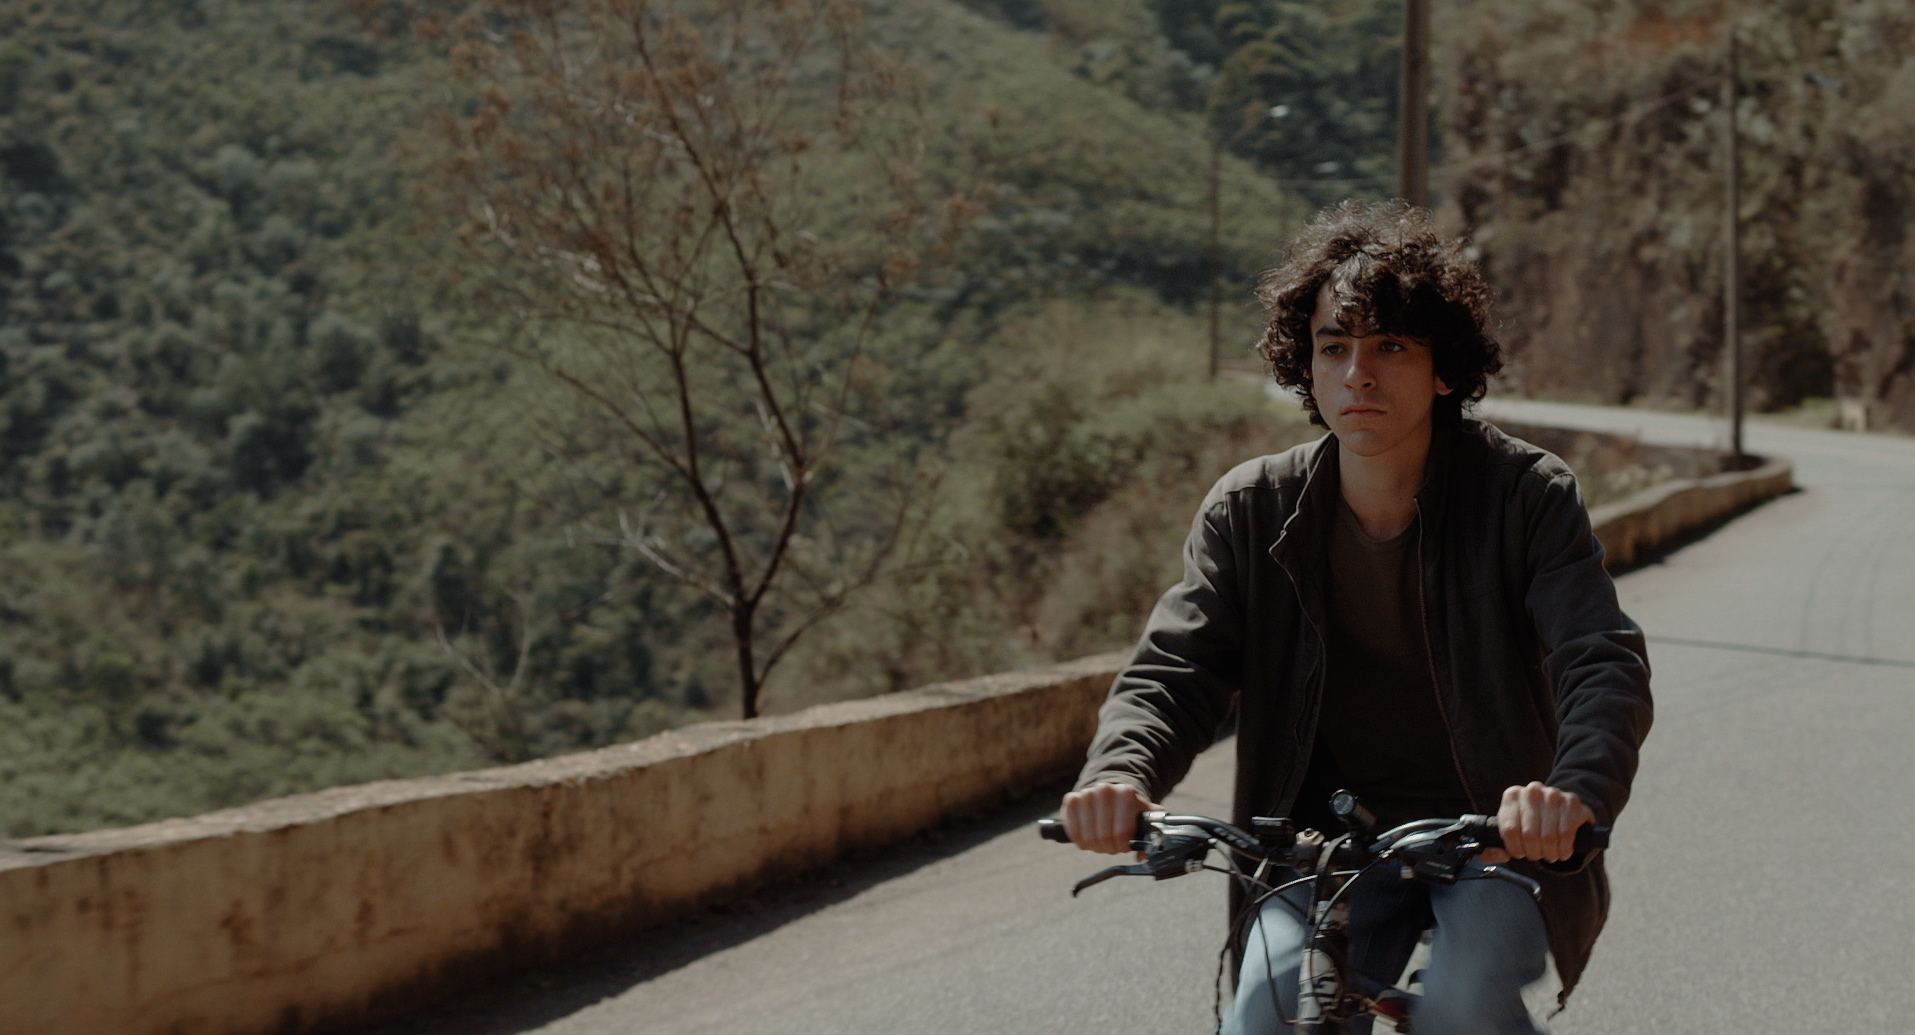 It's Official: Brazil, Argentina, and Venezuela Produced the Best Latin American Films of 2017